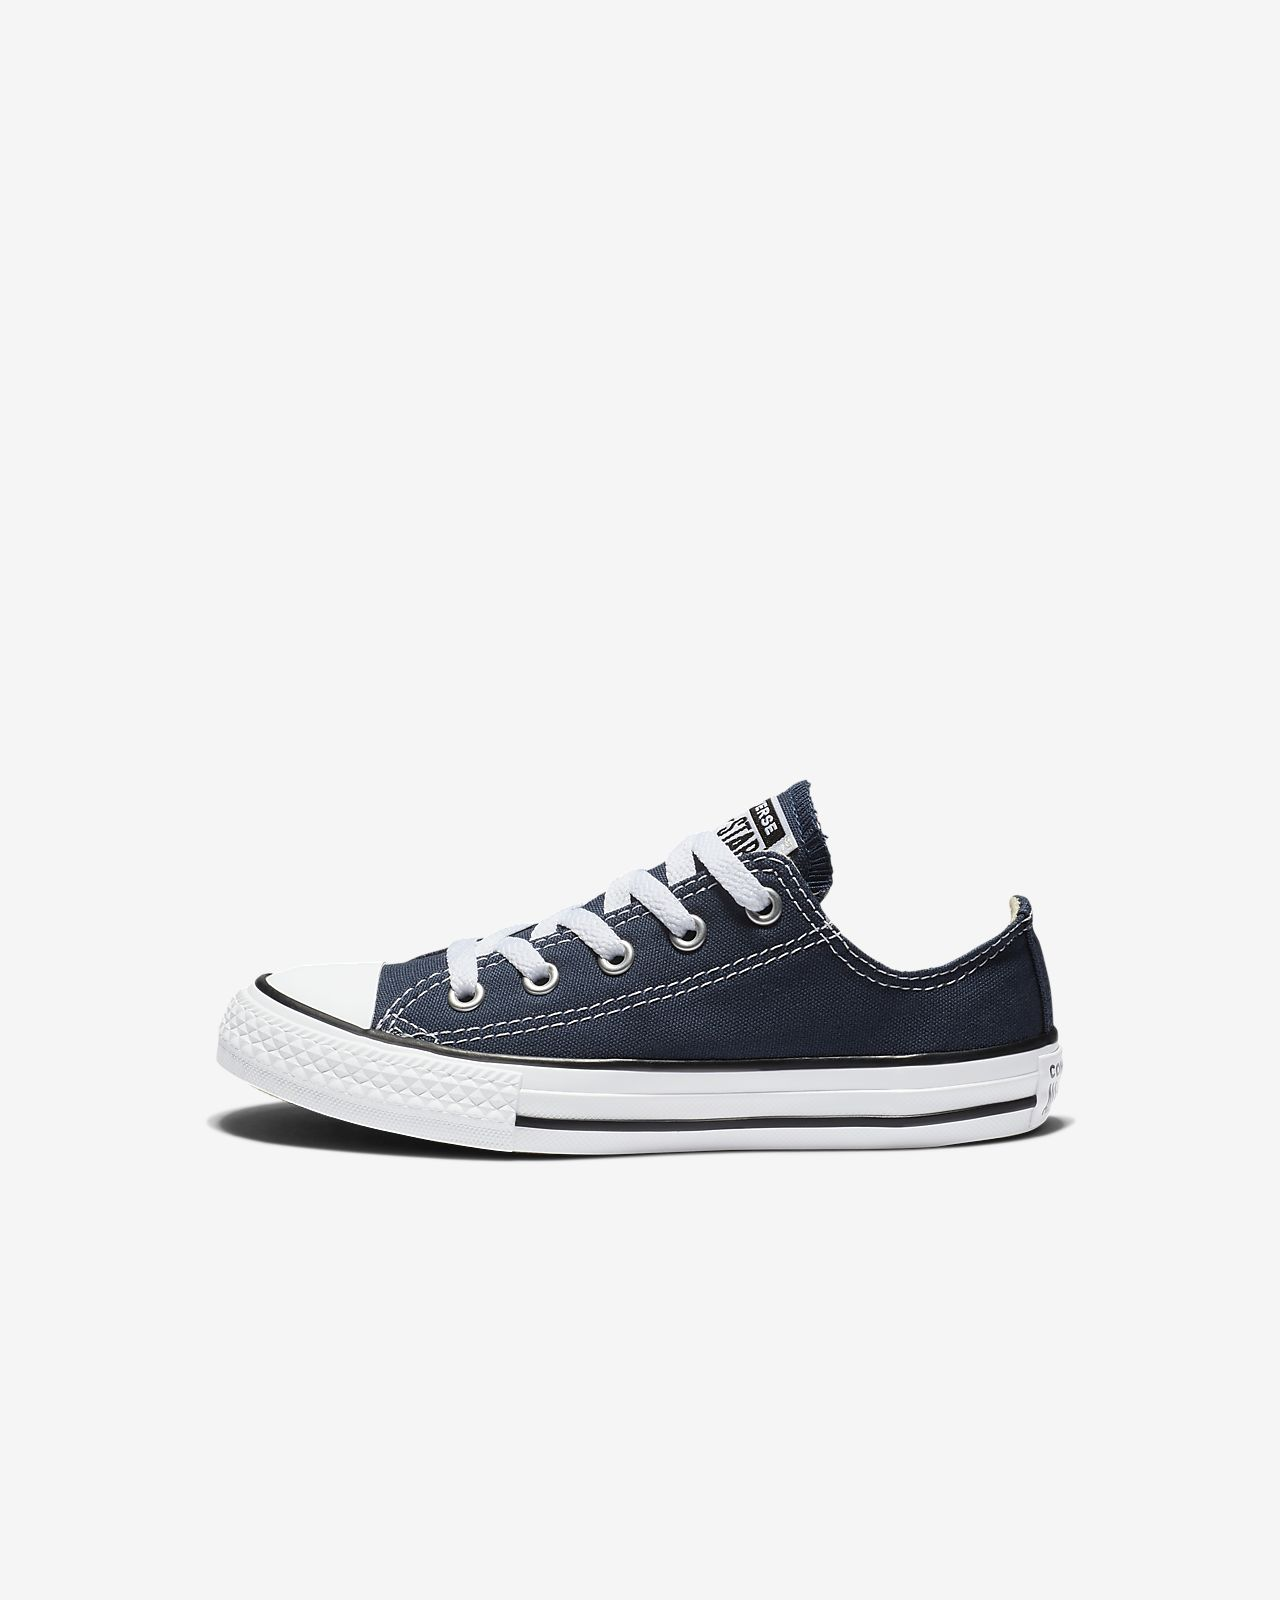 converse taylor all